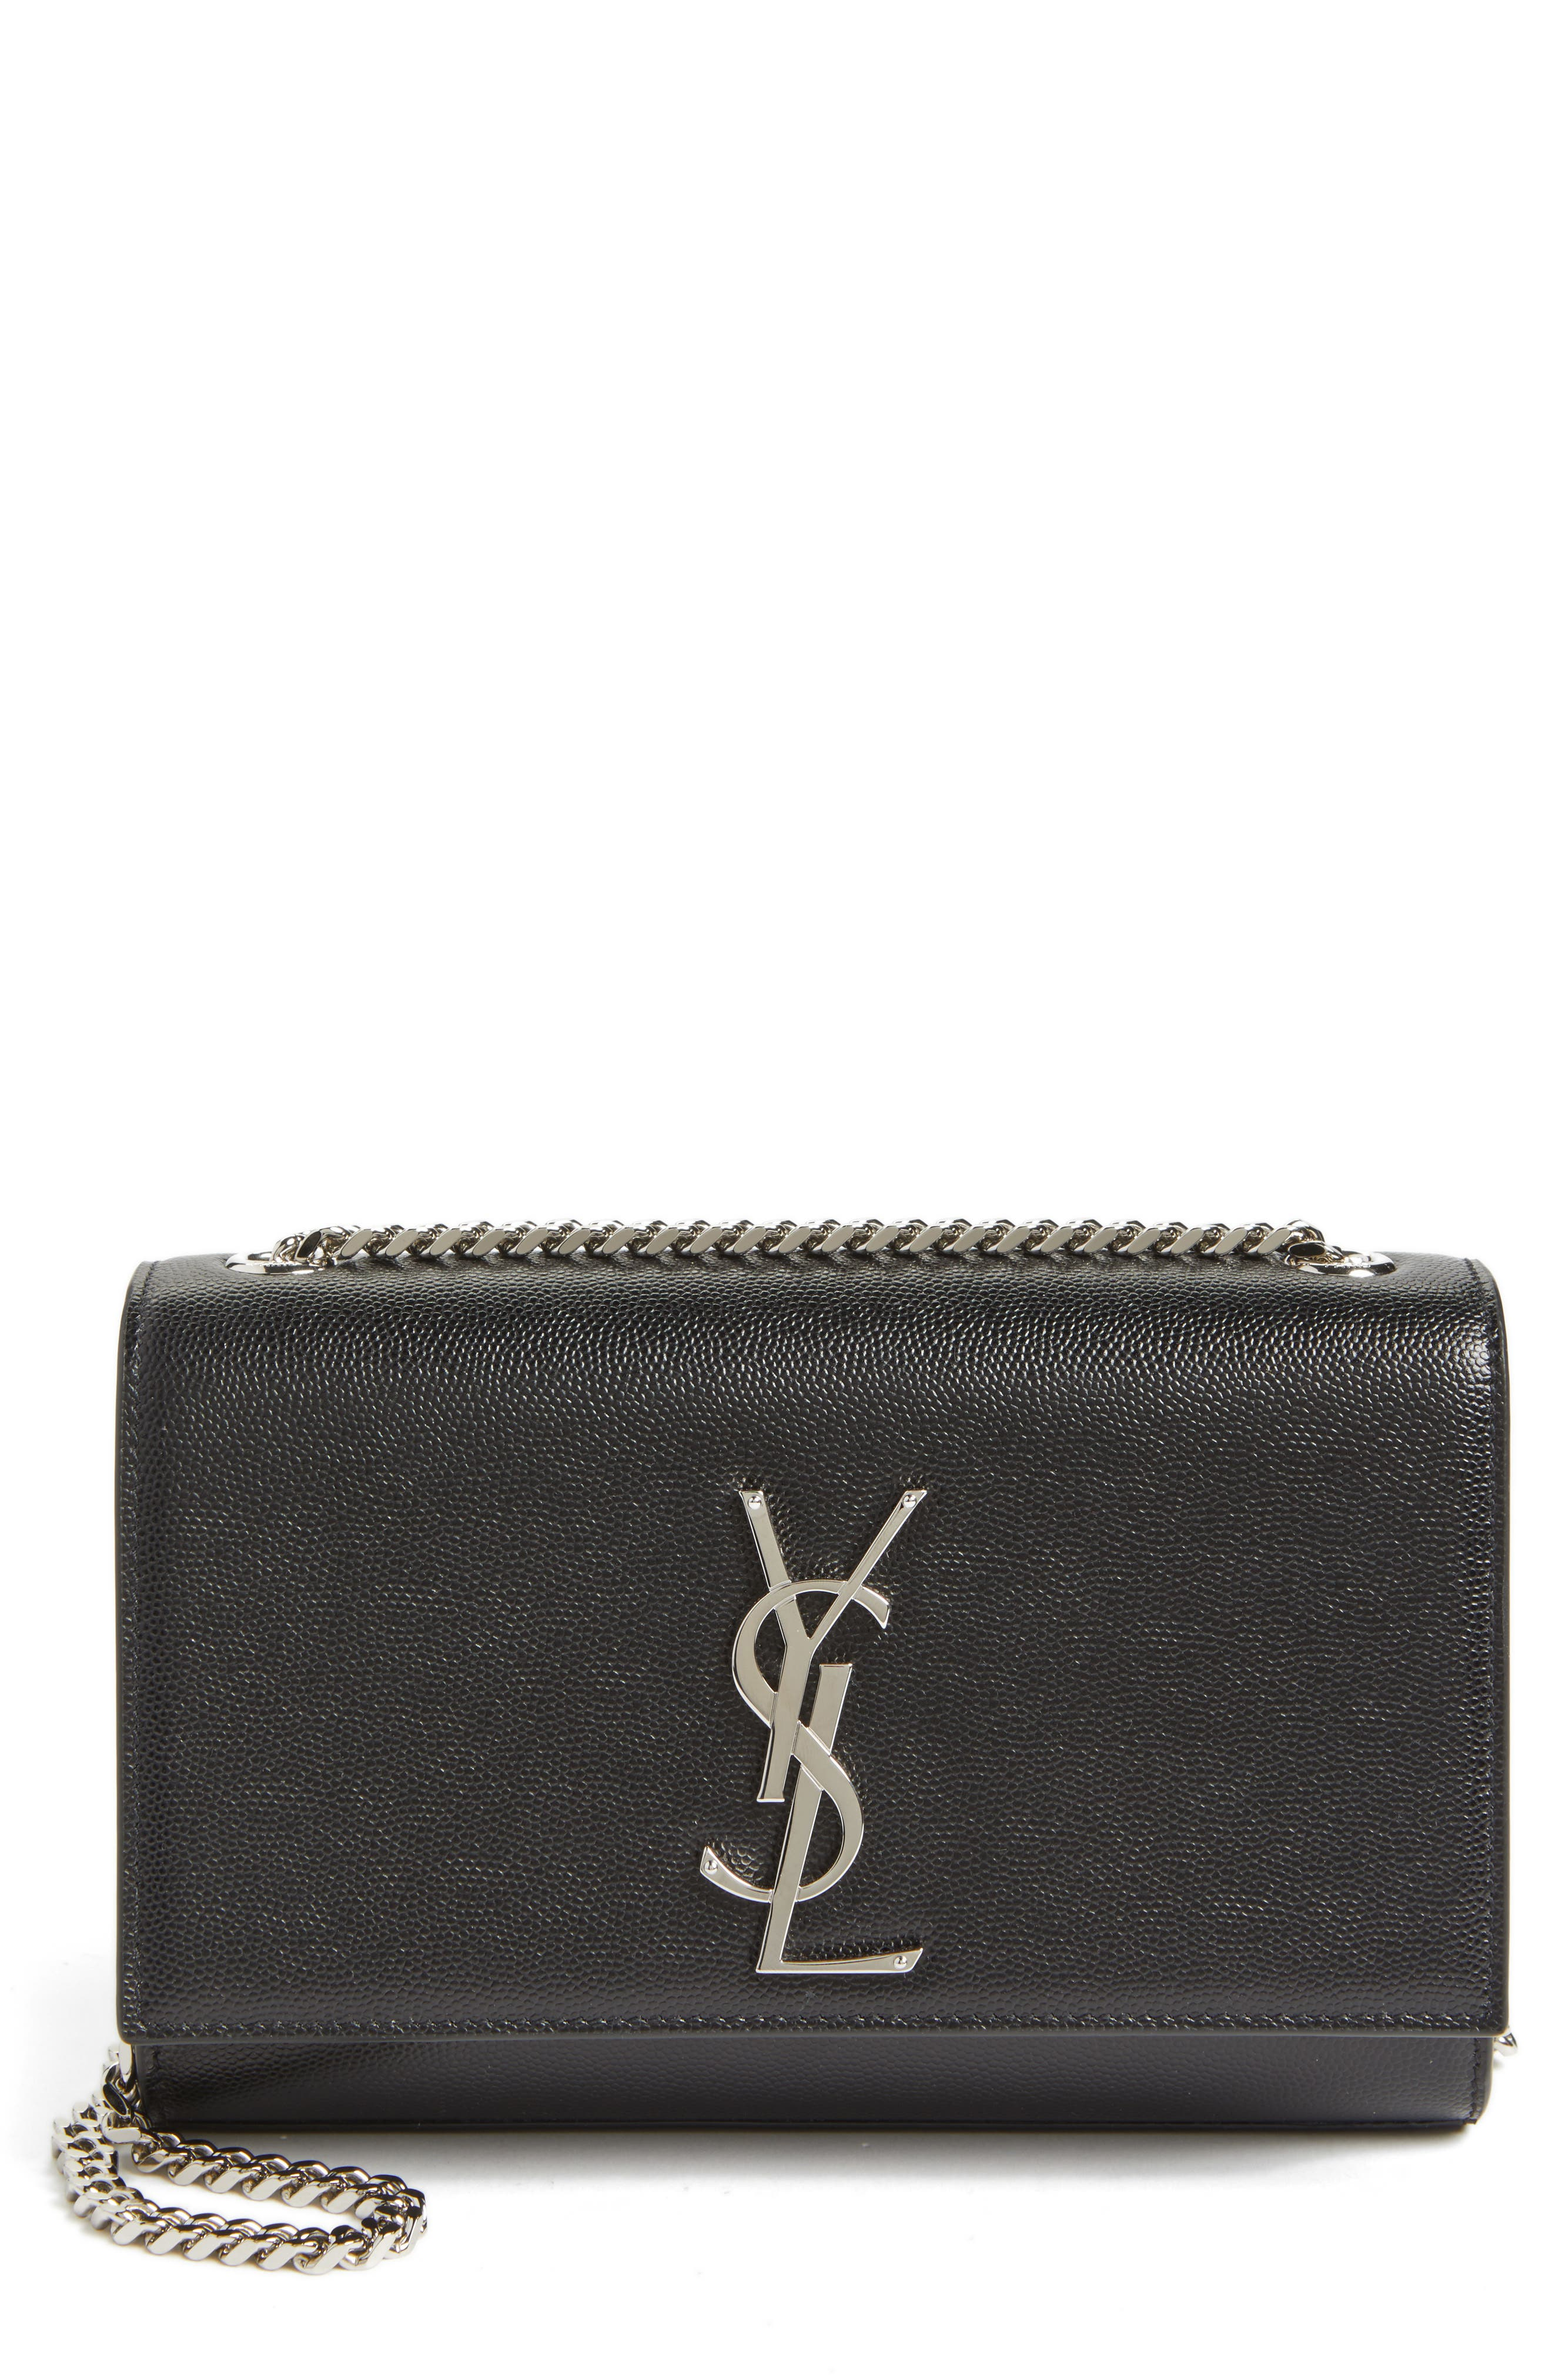 SAINT LAURENT, Small Kate Grained Leather Crossbody Bag, Main thumbnail 1, color, NOIR